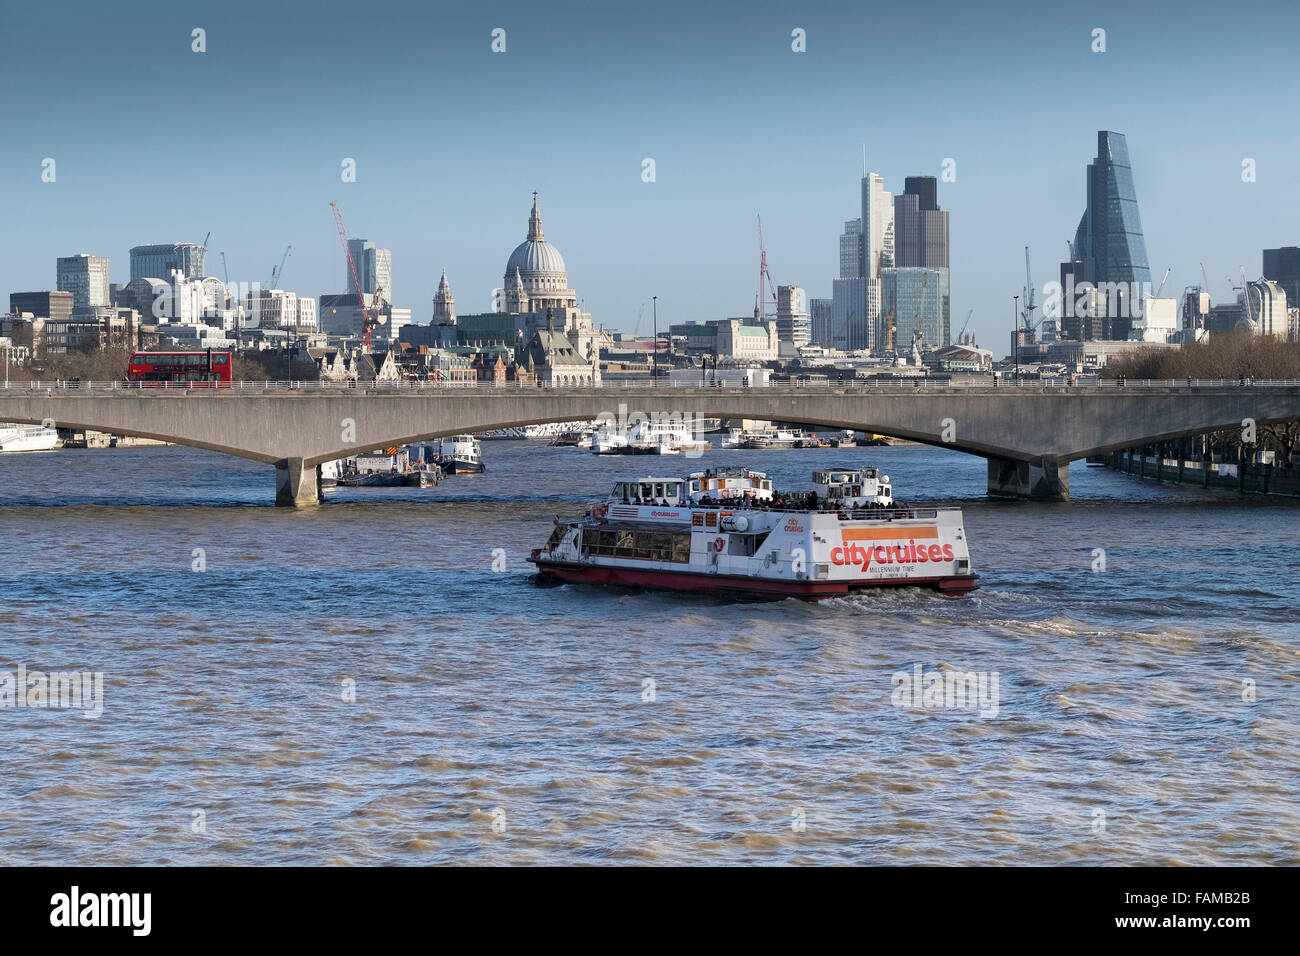 The sightseeing ferry, Millenium Time on the River Thames in London. - Stock Image